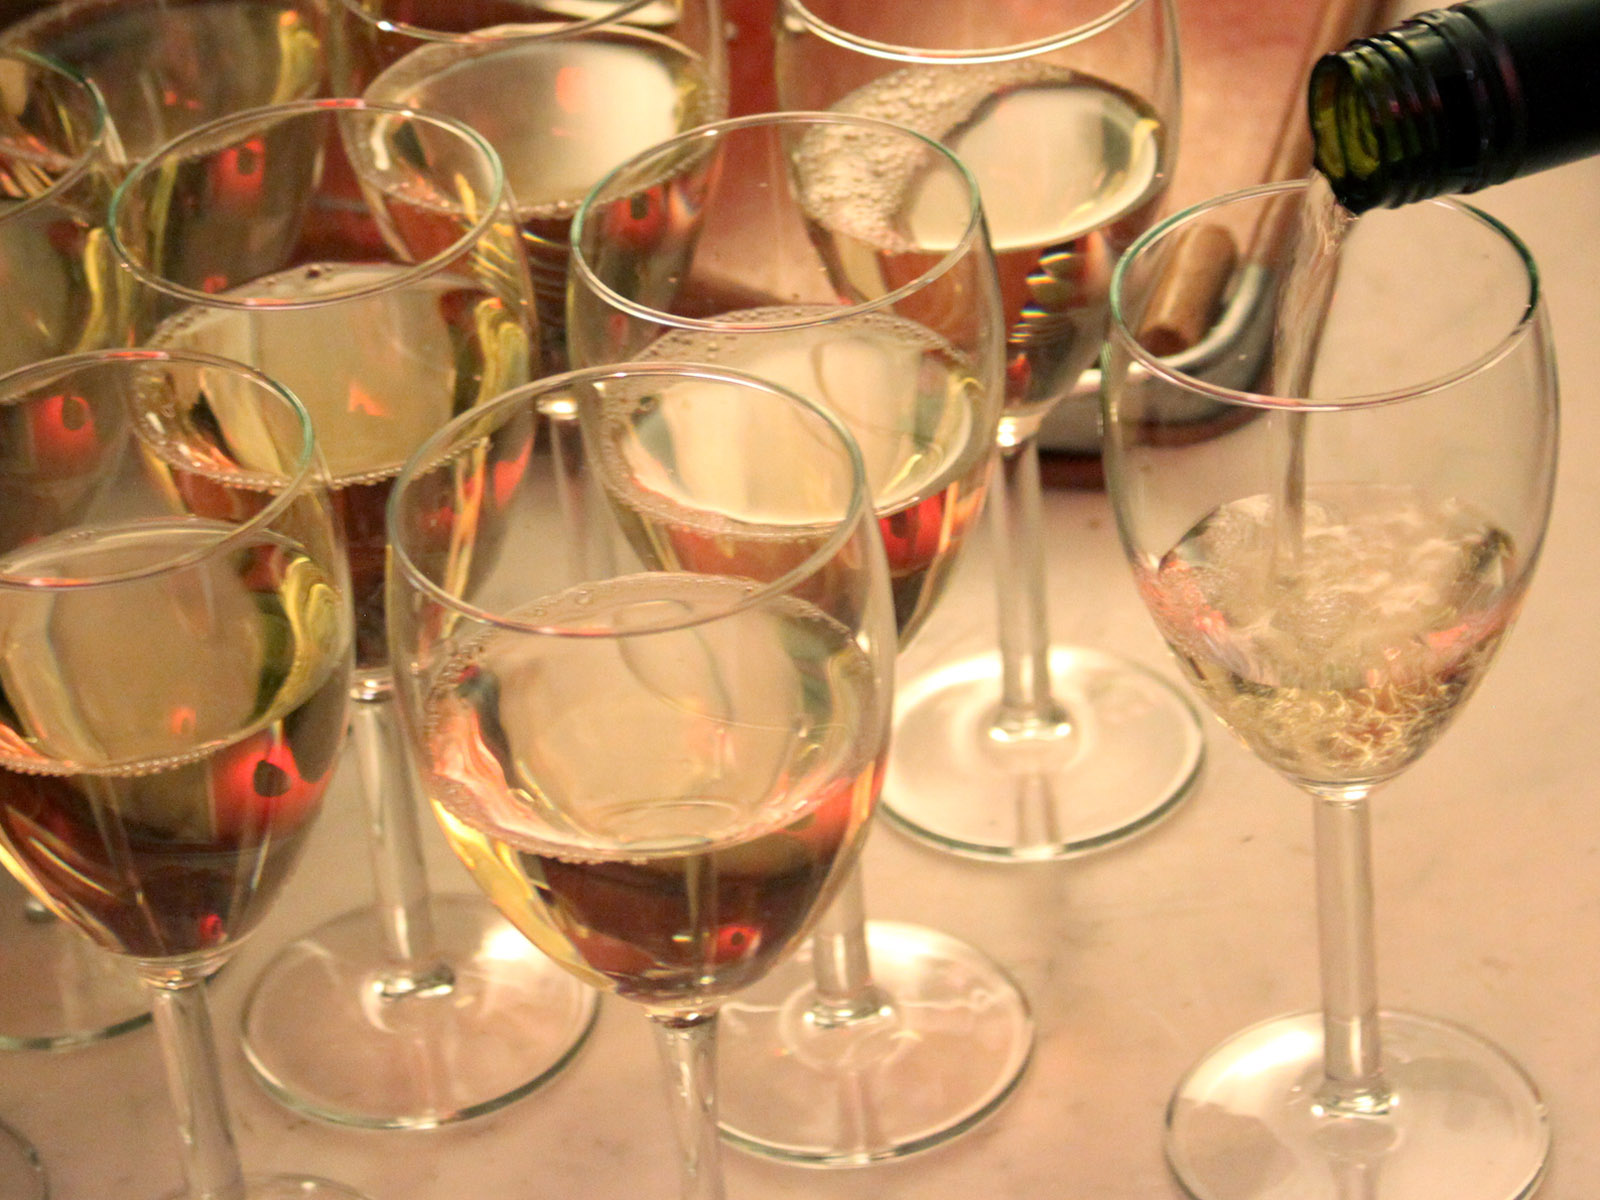 What wines do you love? Learn about wine and understand your palate